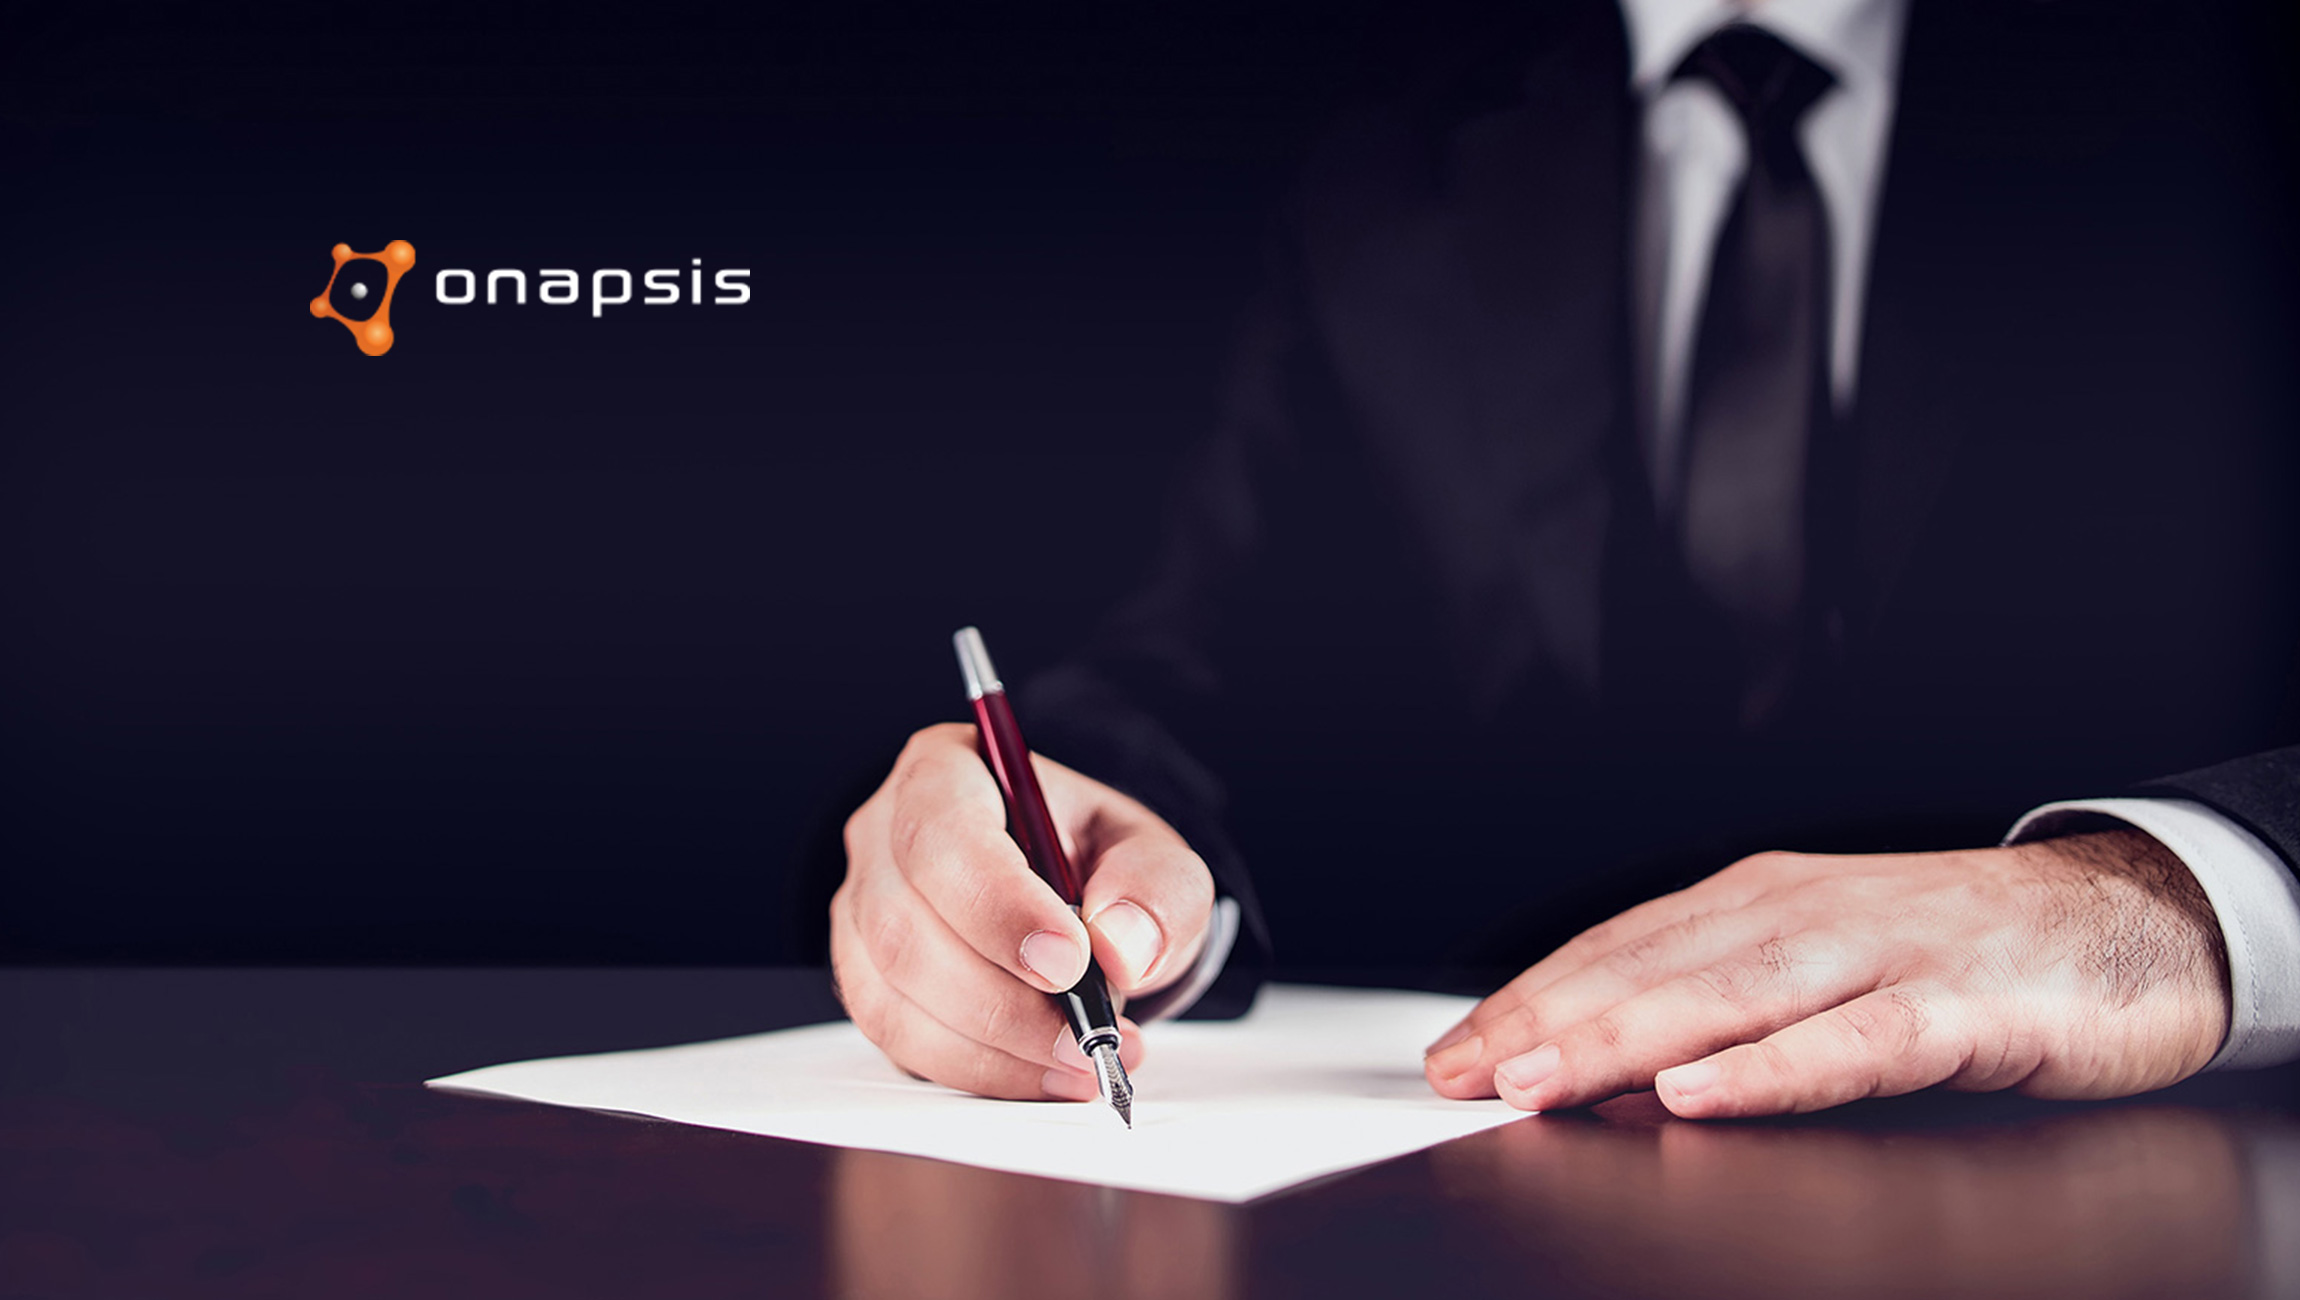 Onapsis Expands Executive Team with Leaders from Fossil Group, Carbon Black, Trustwave and Synopsys